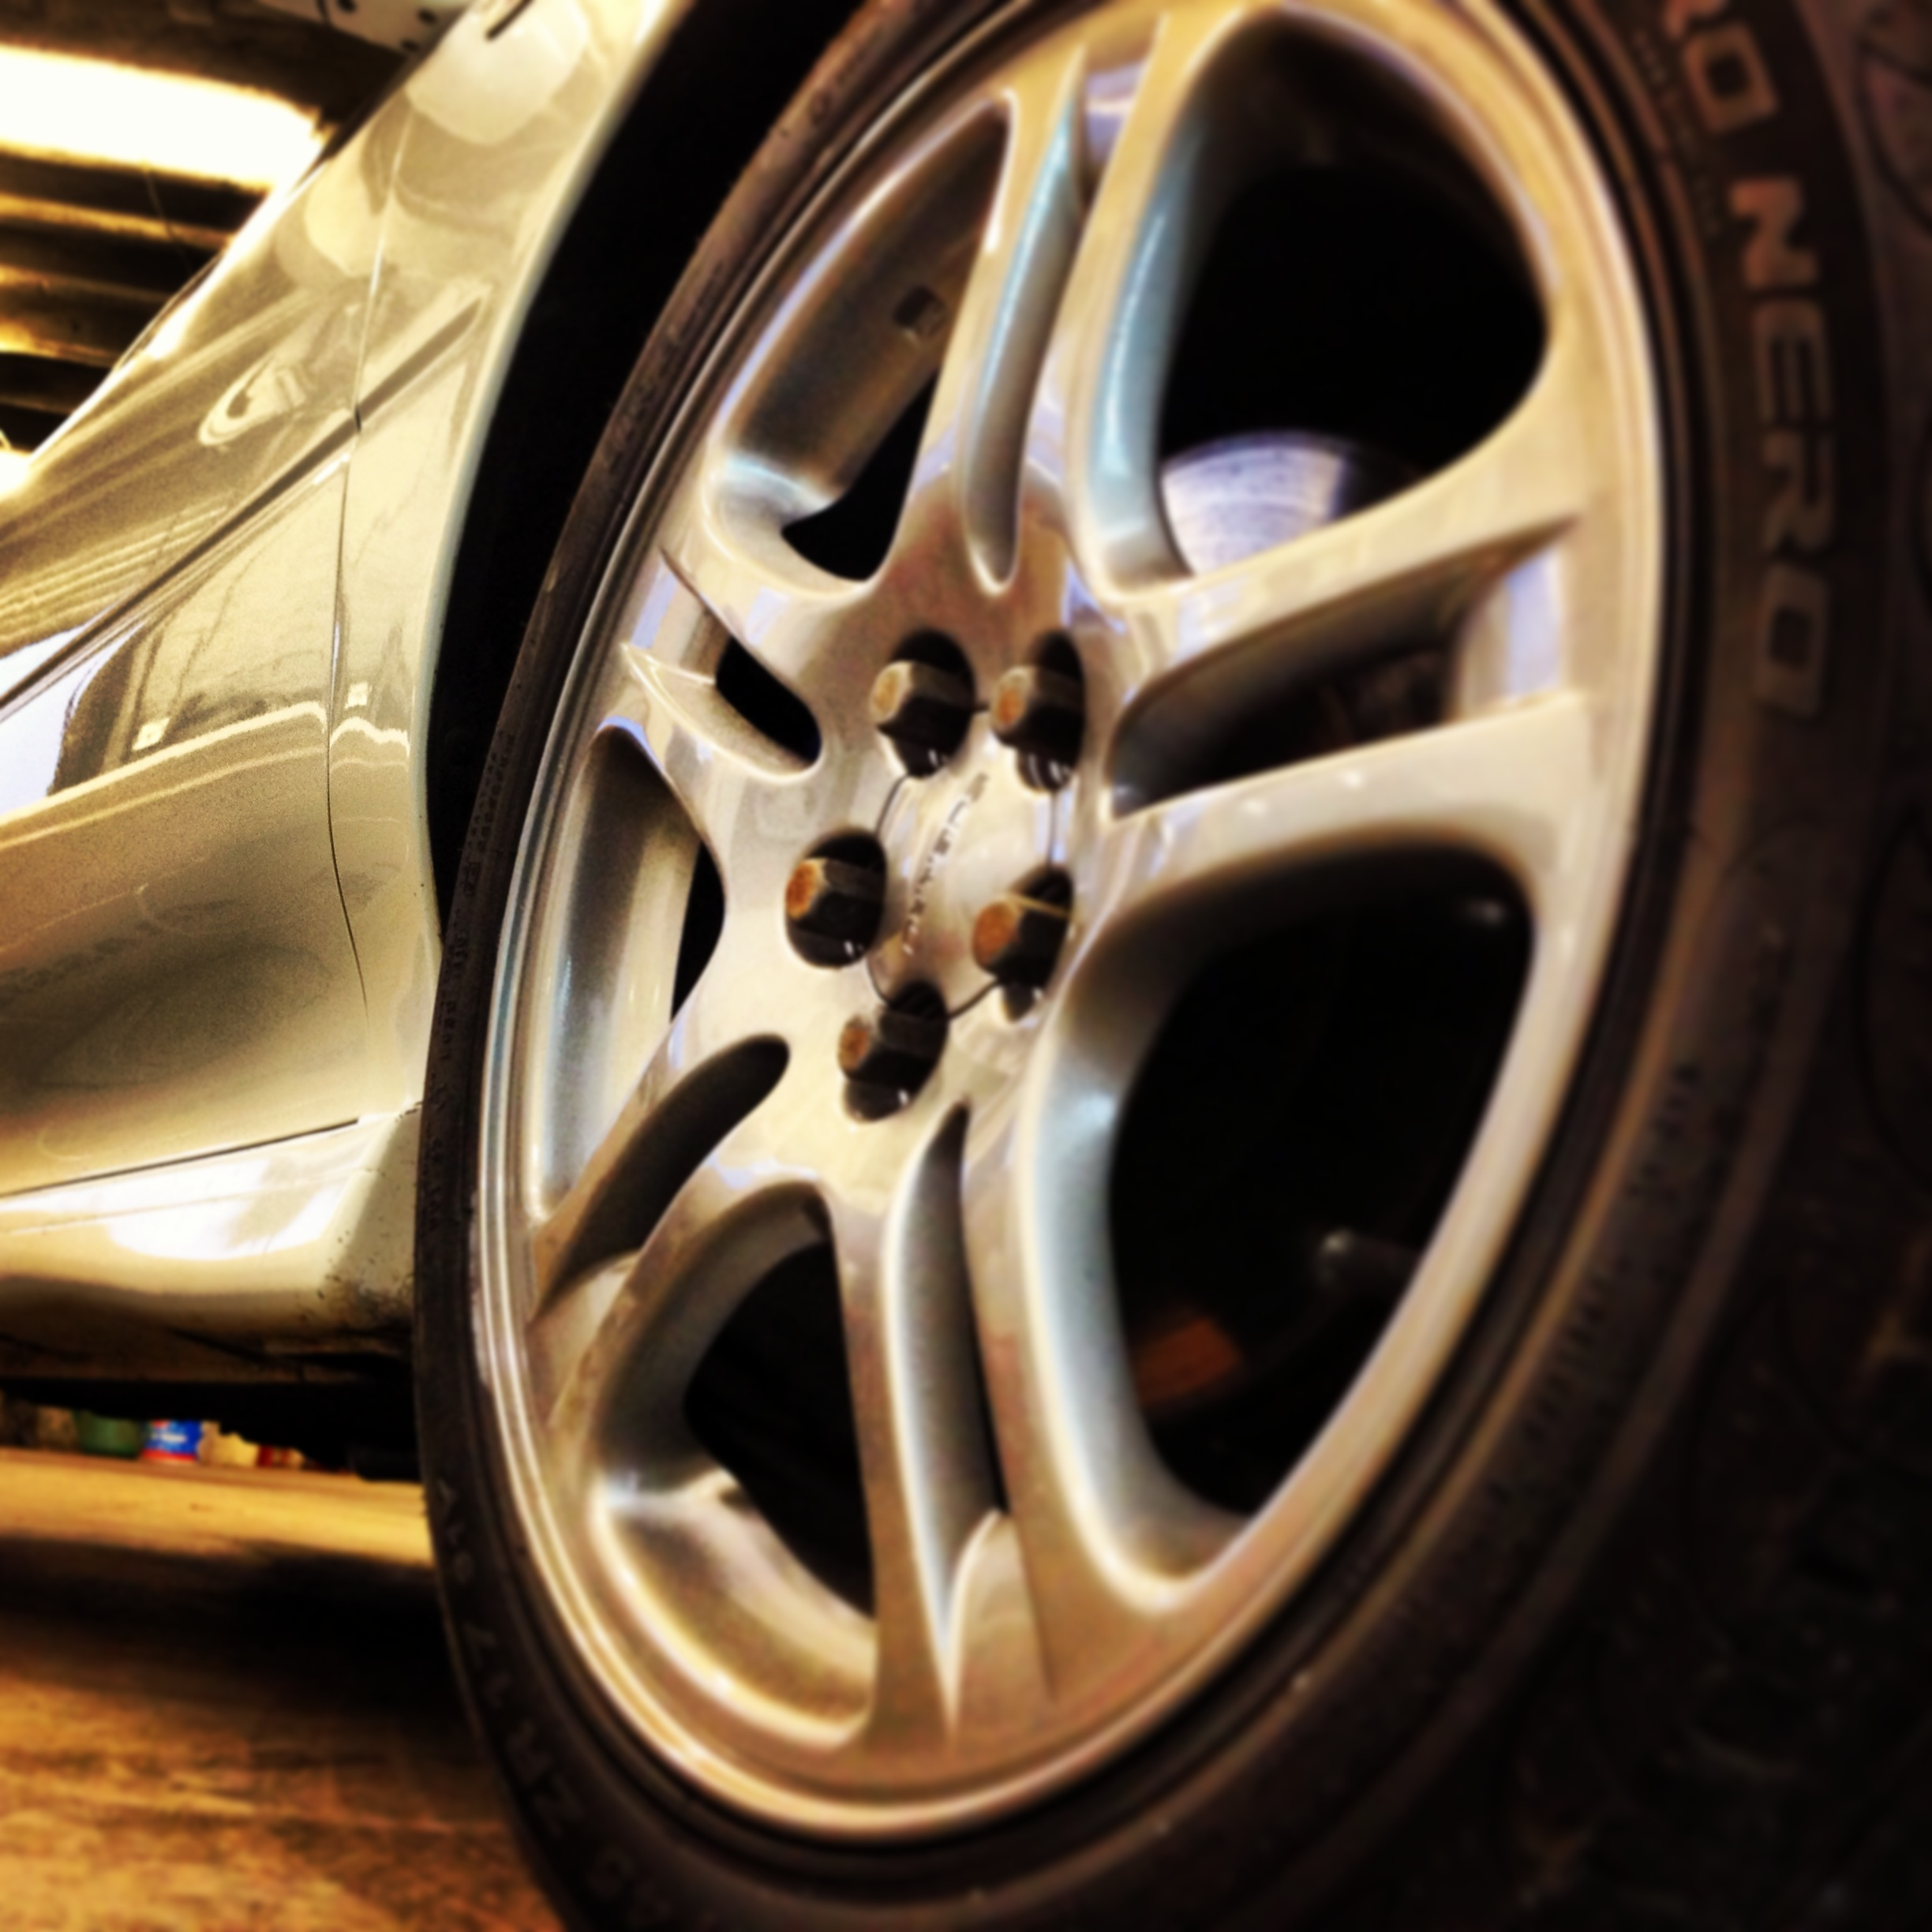 Subaru Impreza - Alloy Wheels